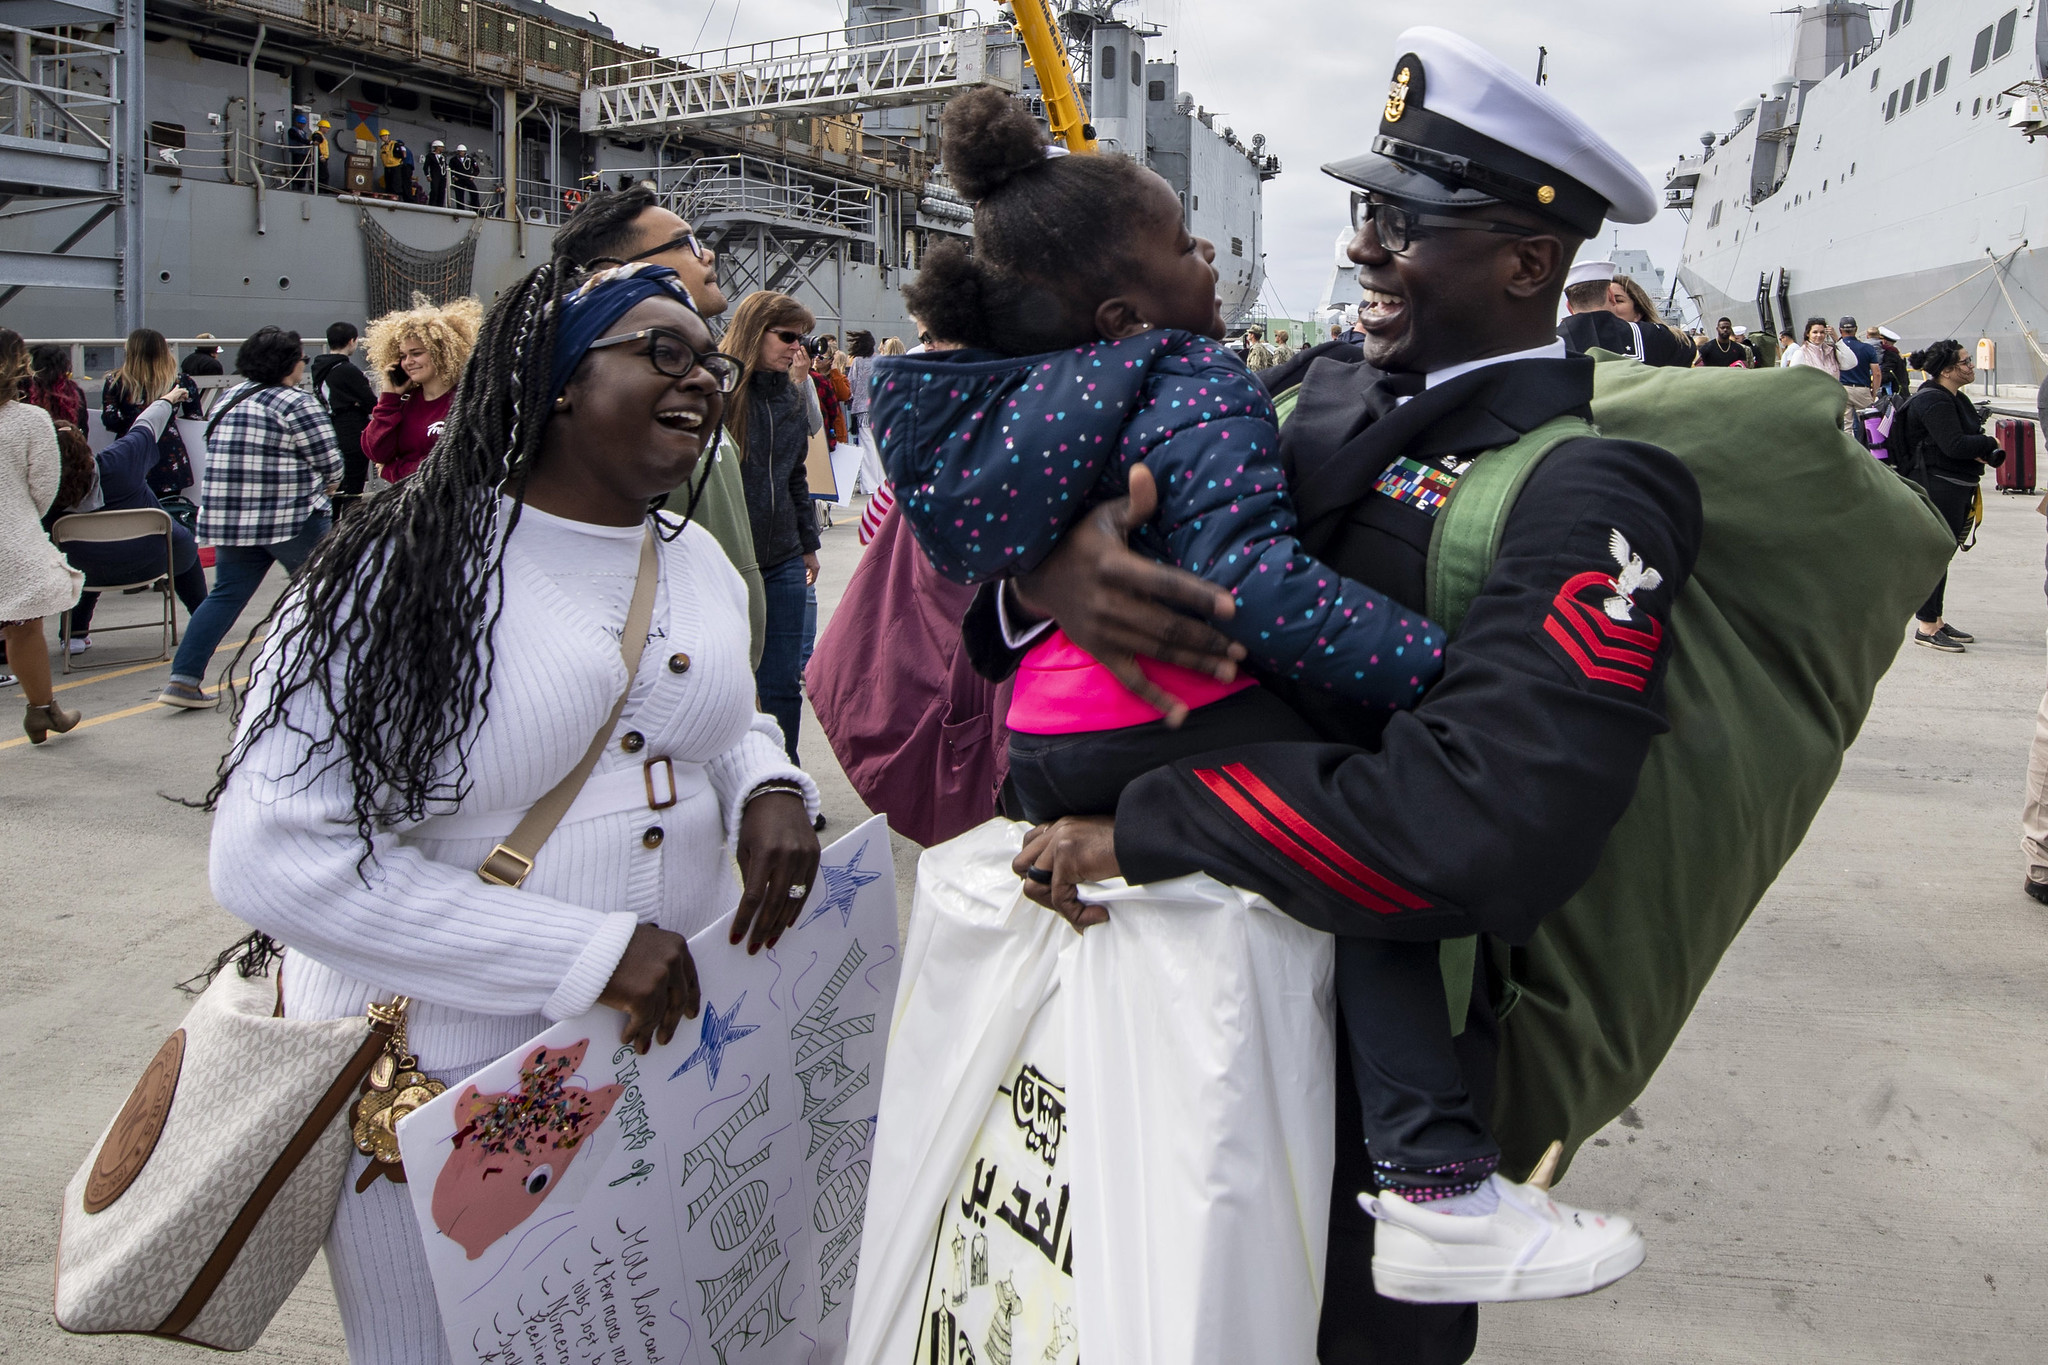 Chief Personnel Specialist Jonathan Kwakye, assigned to the amphibious transport dock ship USS John P. Murtha (LPD 26), reunites with his family Nov. 27, 2019, during a homecoming gathering at Naval Base San Diego. (Mass Communication Specialist 2nd Class Kyle Carlstrom/Navy)